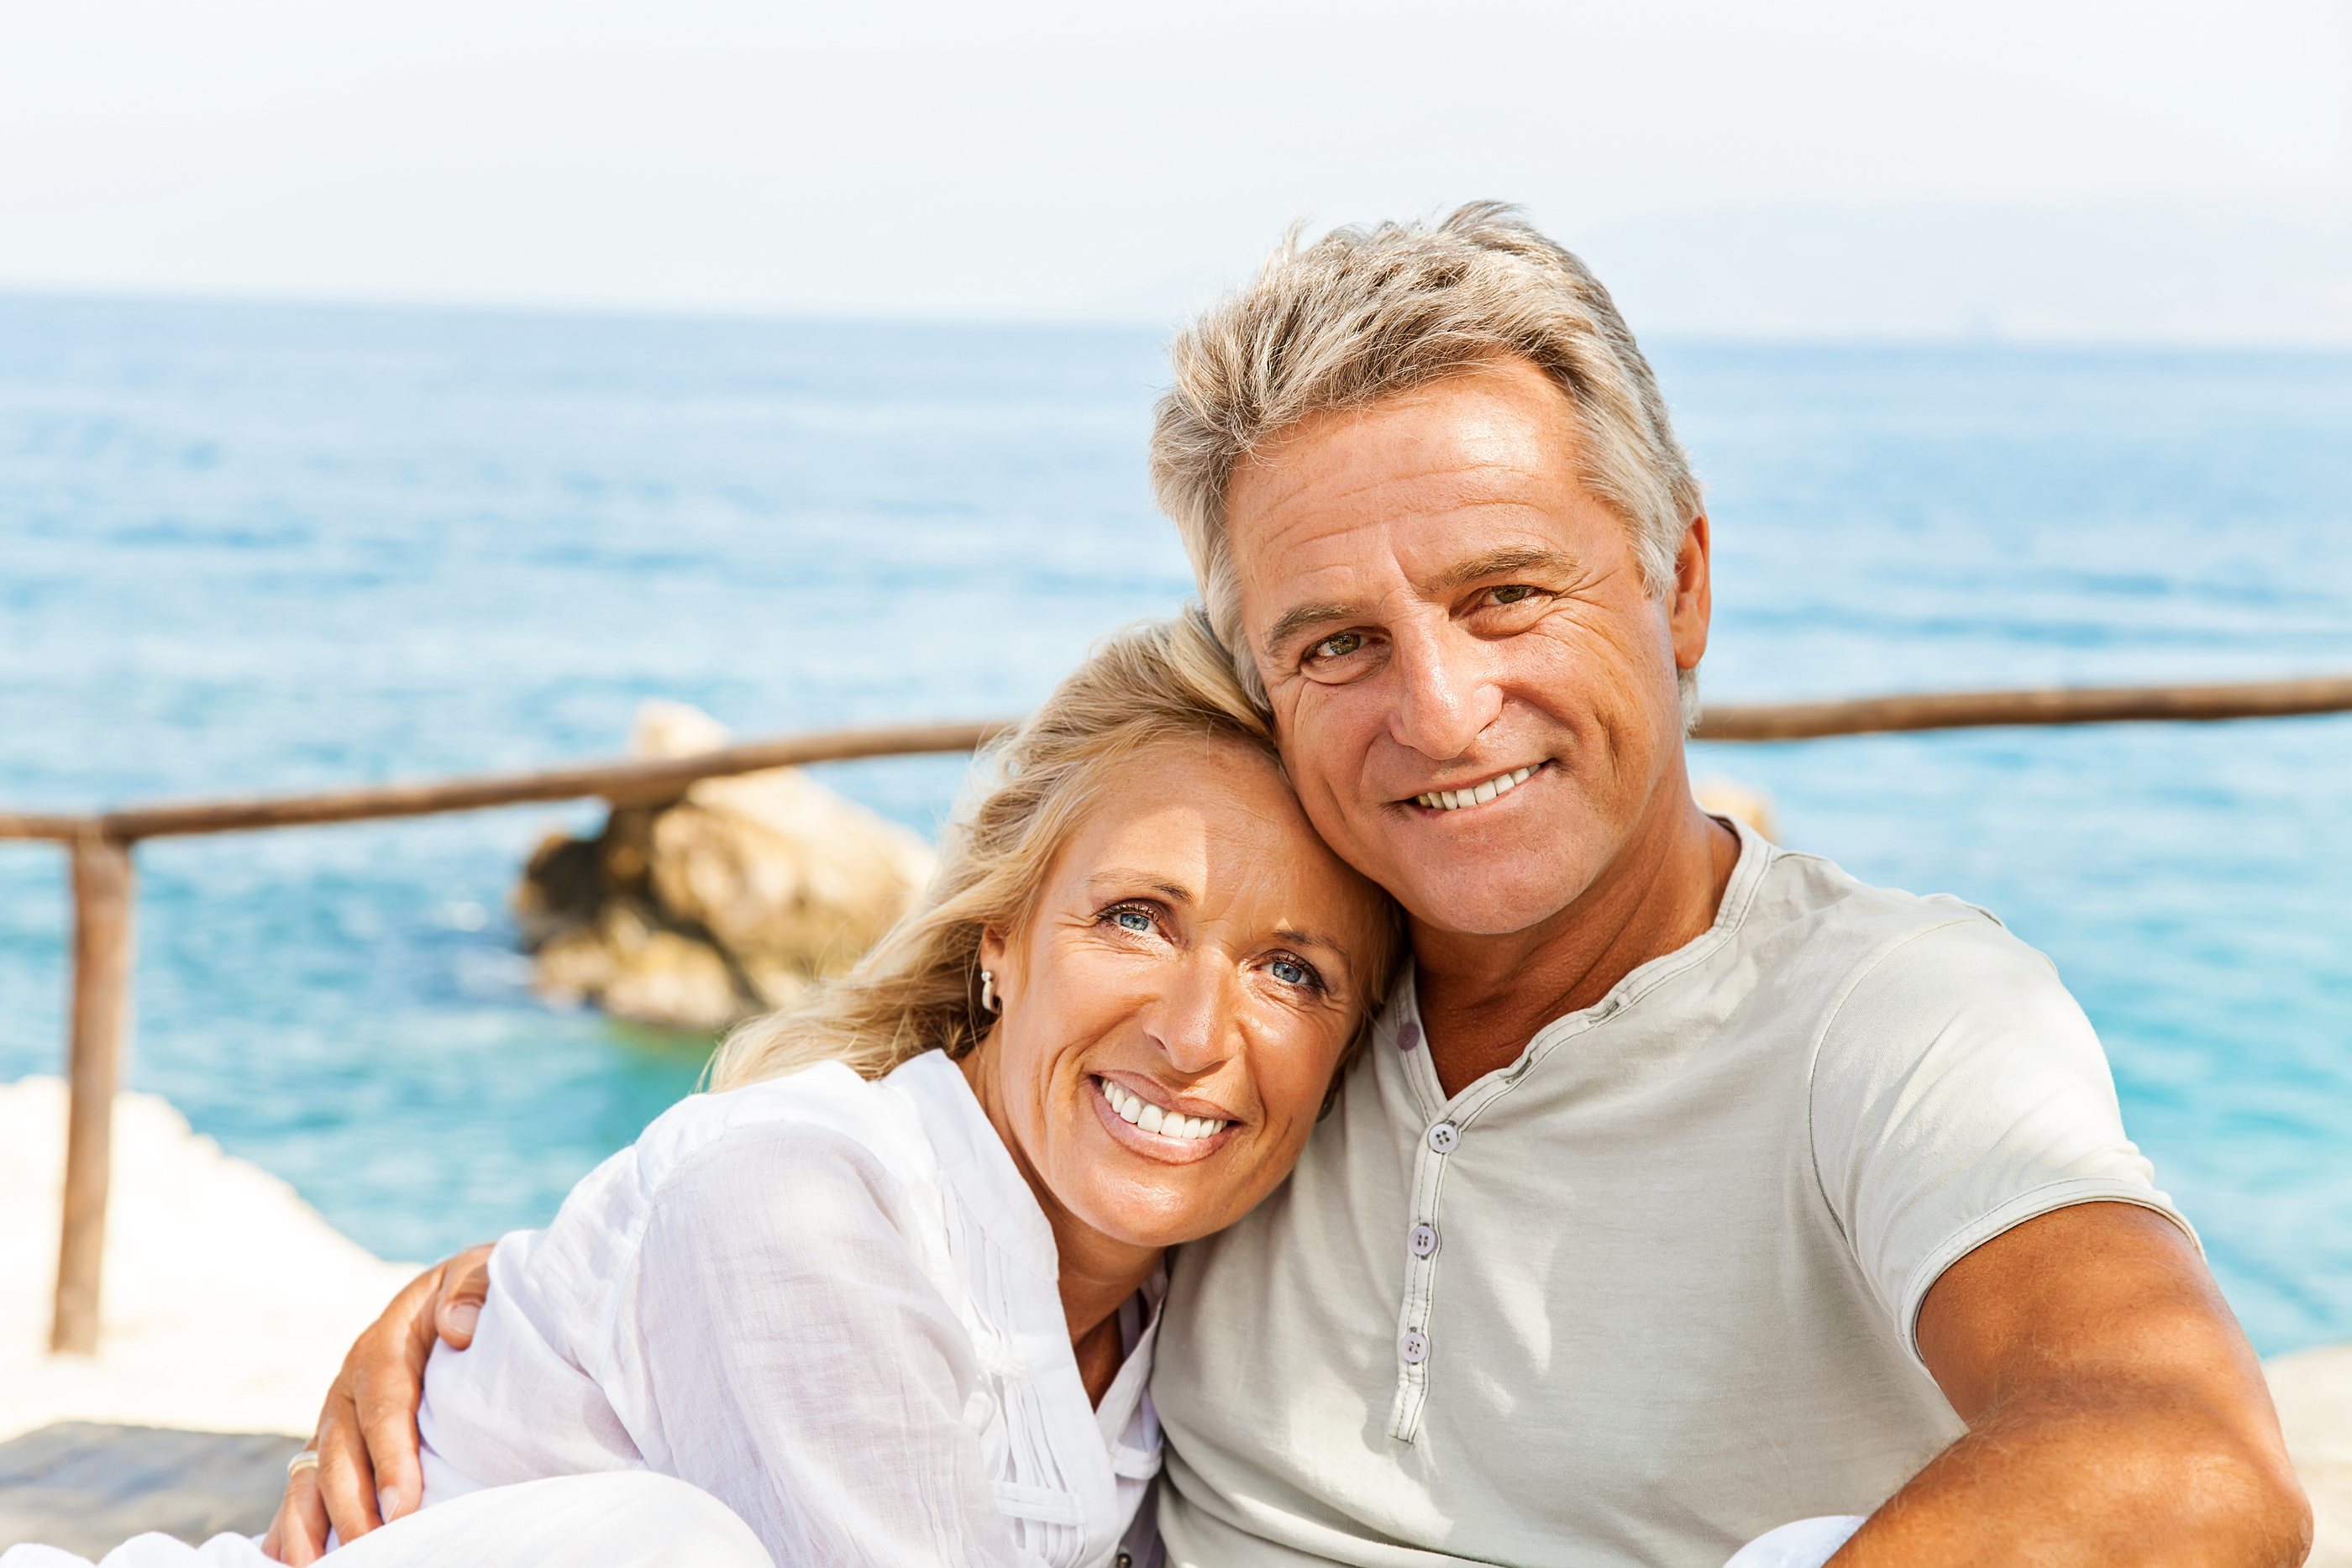 laguna beach single men over 50 Meet single men in laguna beach ca online & chat in the forums dhu is a 100% free dating site to find single men in laguna beach.